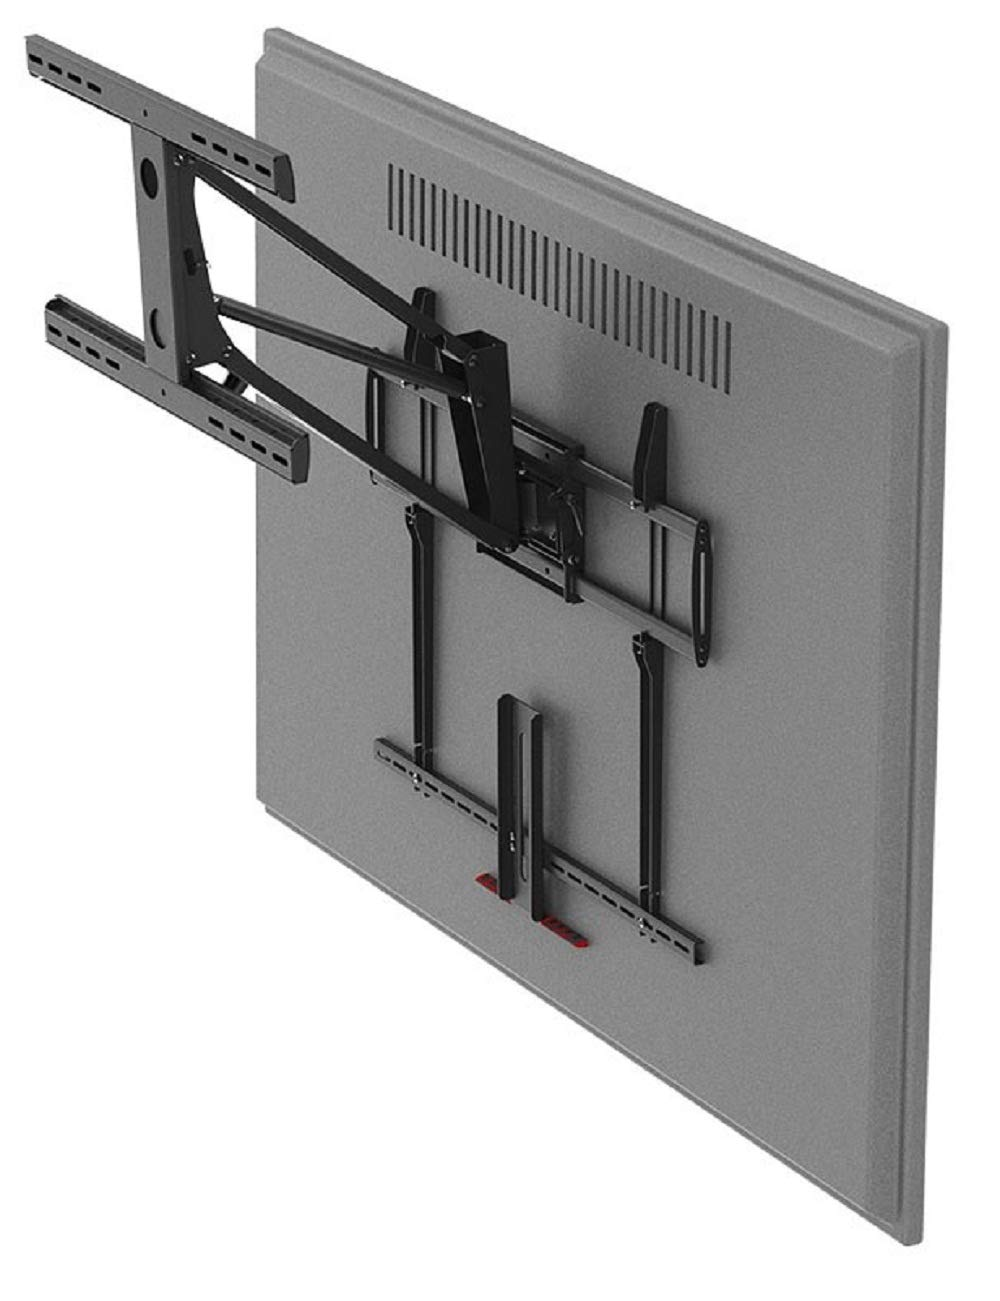 Monoprice Above Fireplace Pull-Down Full-Motion Articulating TV Wall Mount Bracket - for TVs 55in to 100in Max Weight 154lbs VESA Patterns Up to 800x400 Rotating Height Adjustable